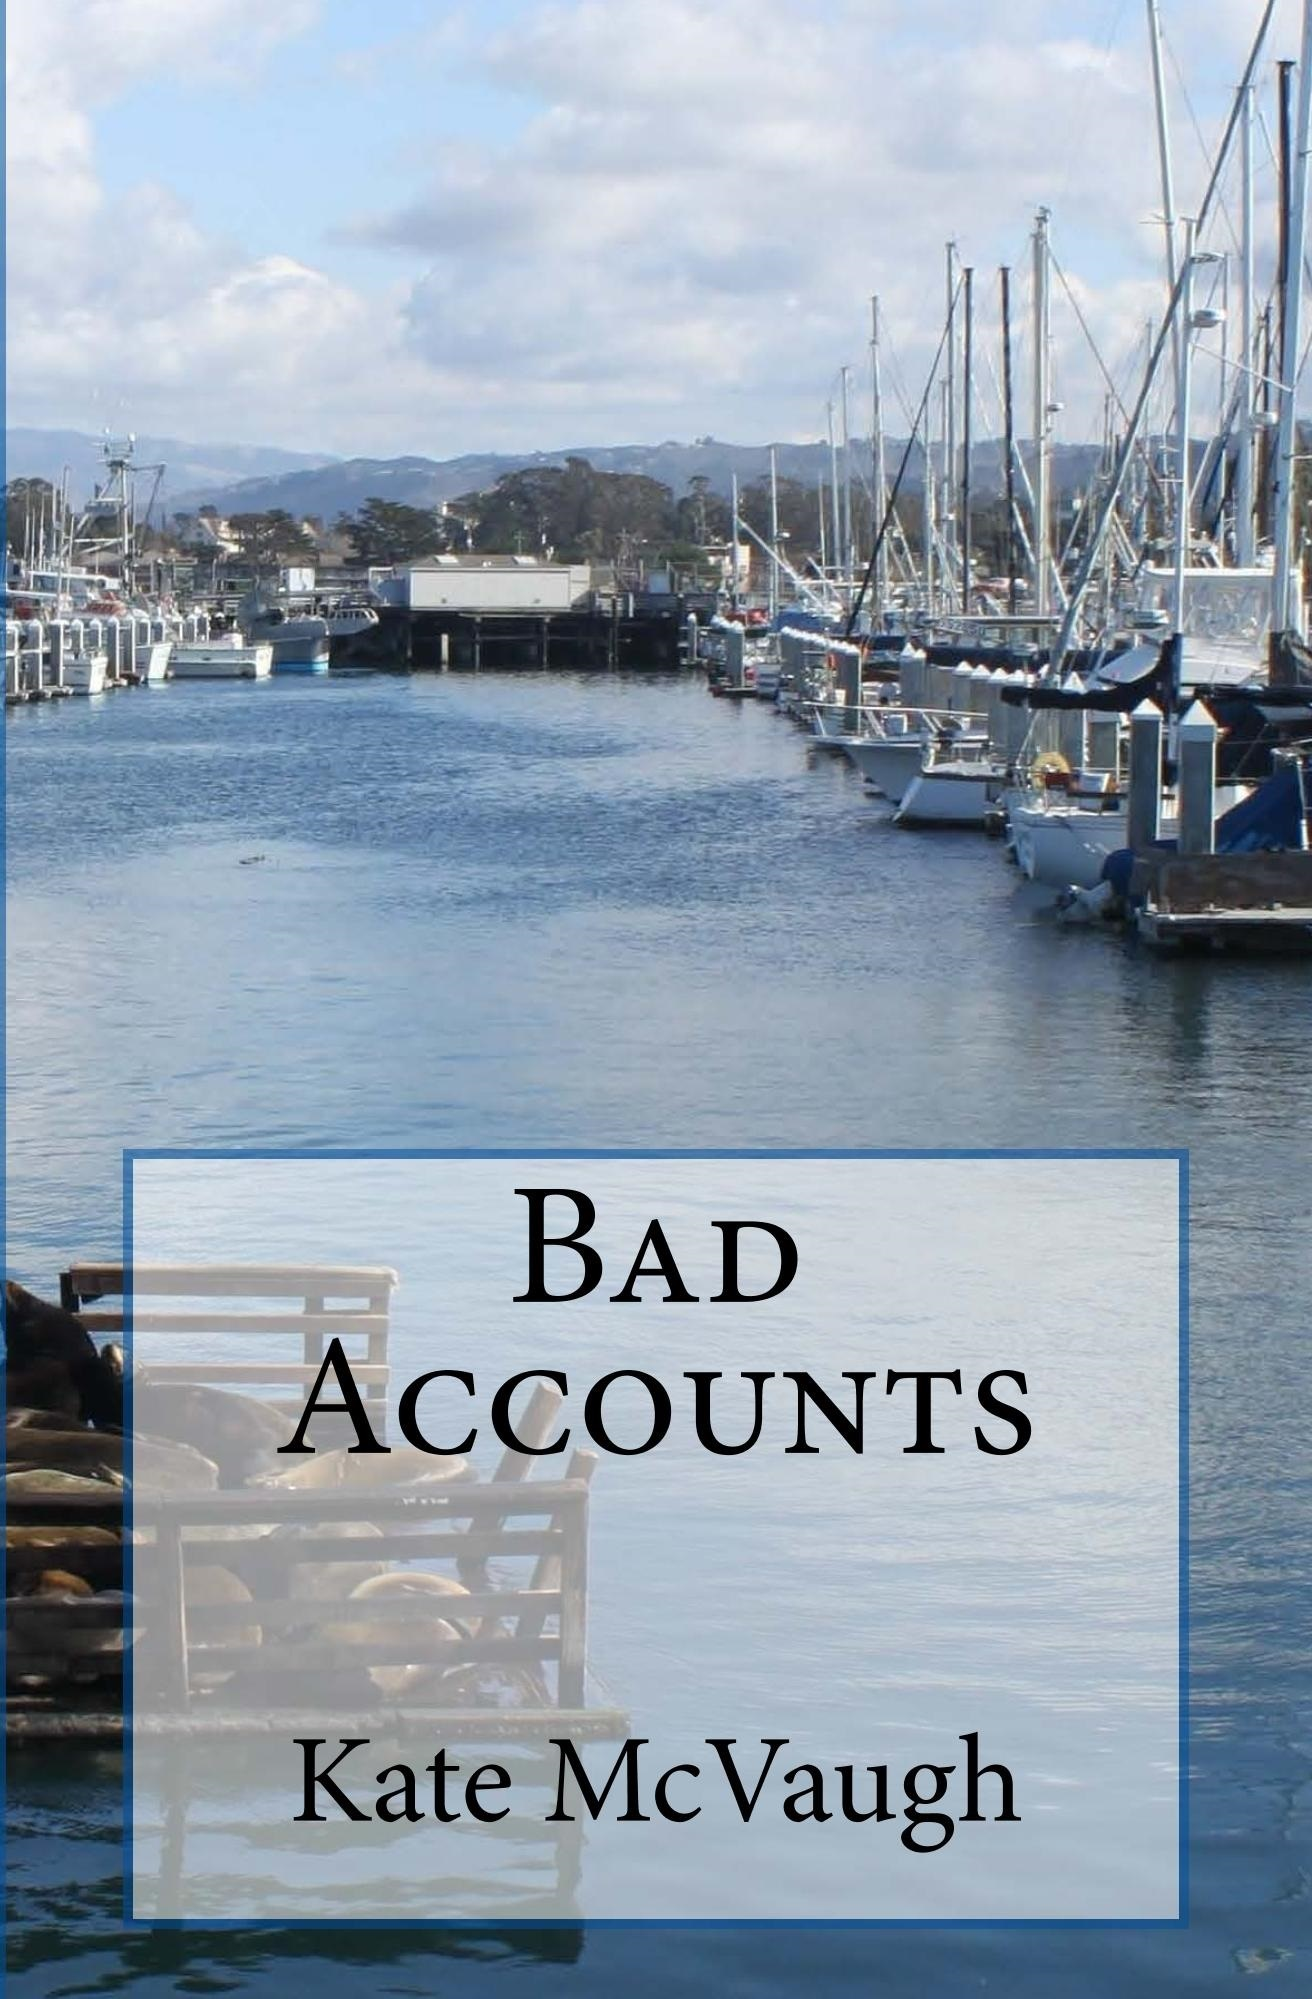 Bad_Accounts_Cover_for_Kindlejpg  2.jpg